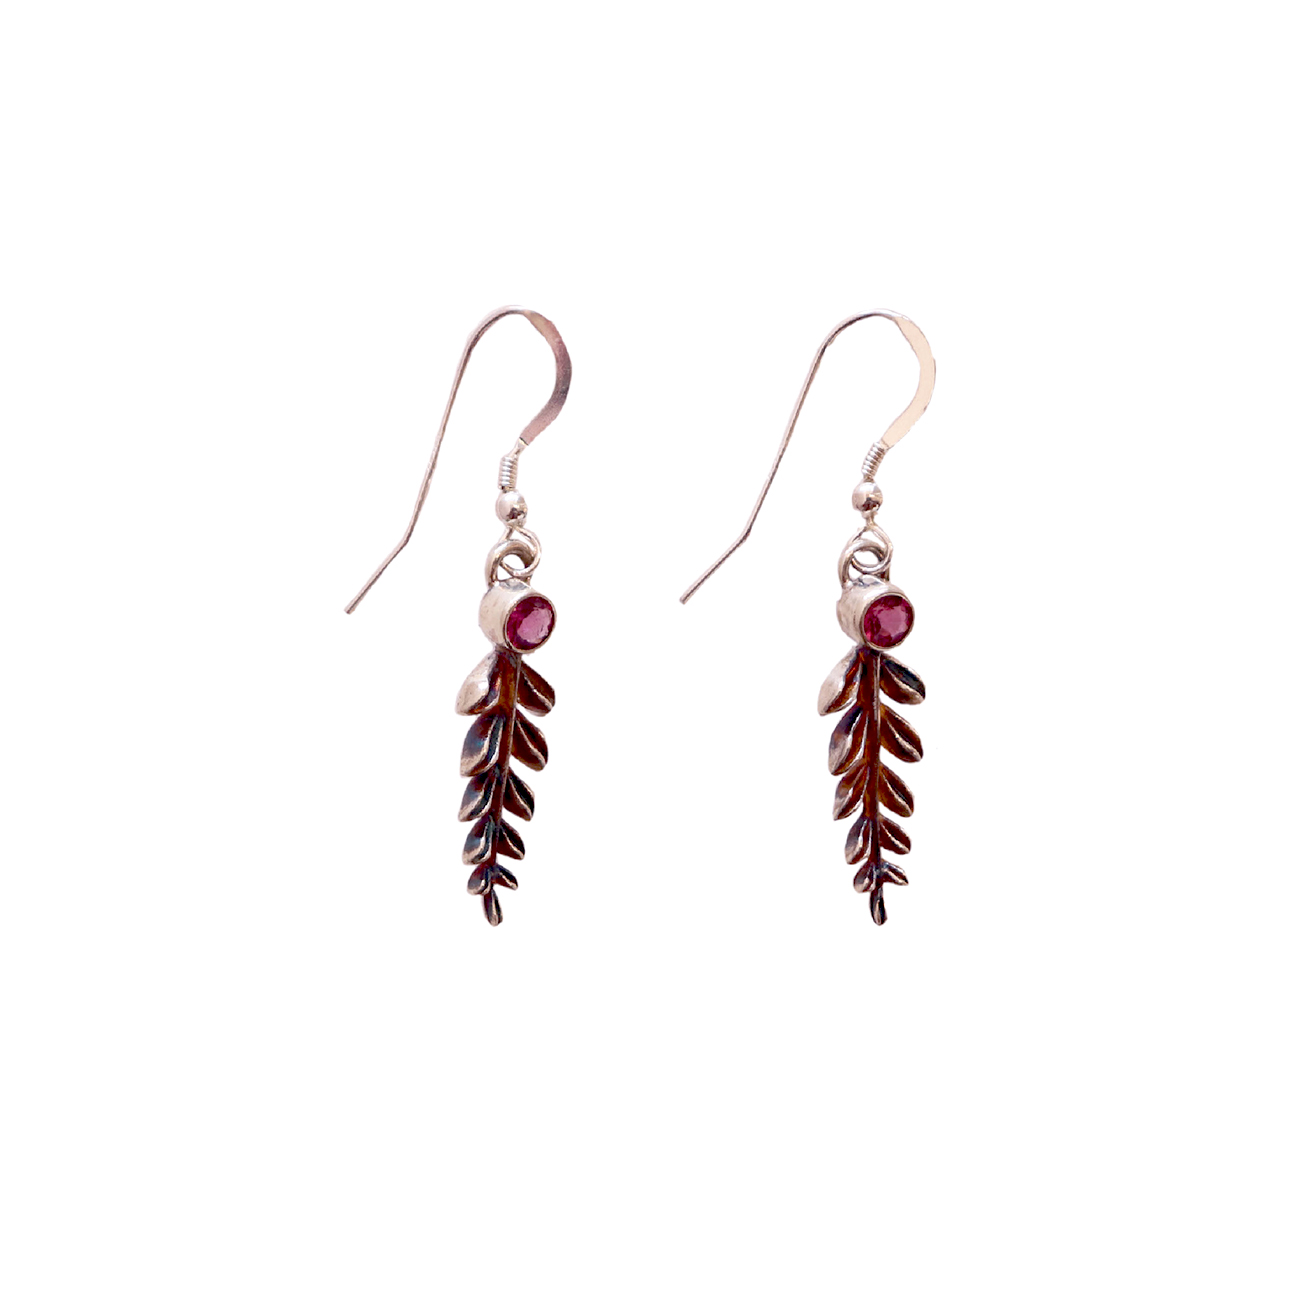 MICHELENE BERKEY - SMALL LEAF EARRINGS WITH RUBELITE - SILVER